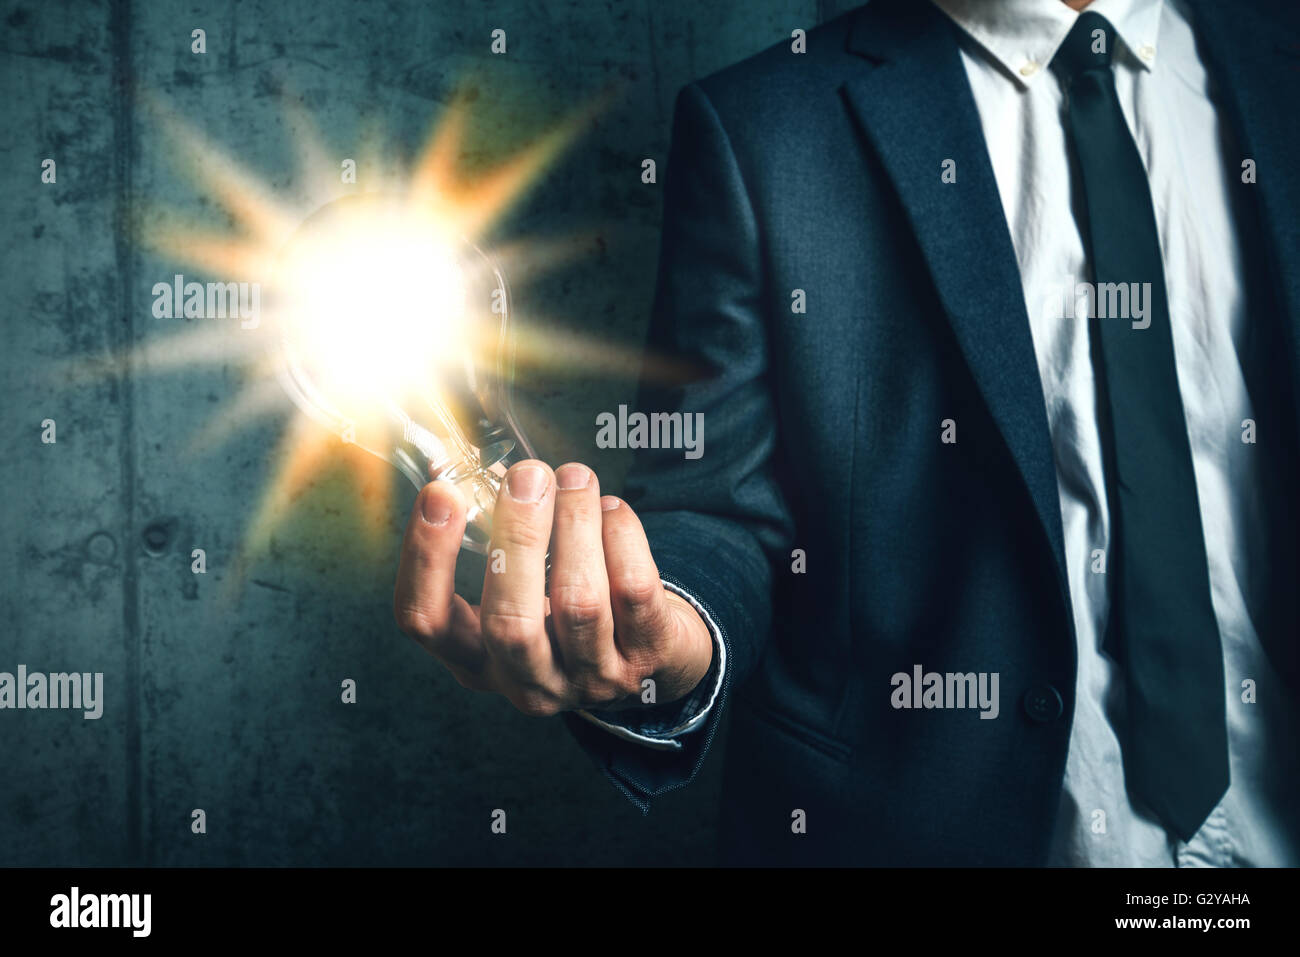 Business creativity and vision concept with elegant adult businessman holding bright light bulb as metaphor of new ideas in hand Stock Photo